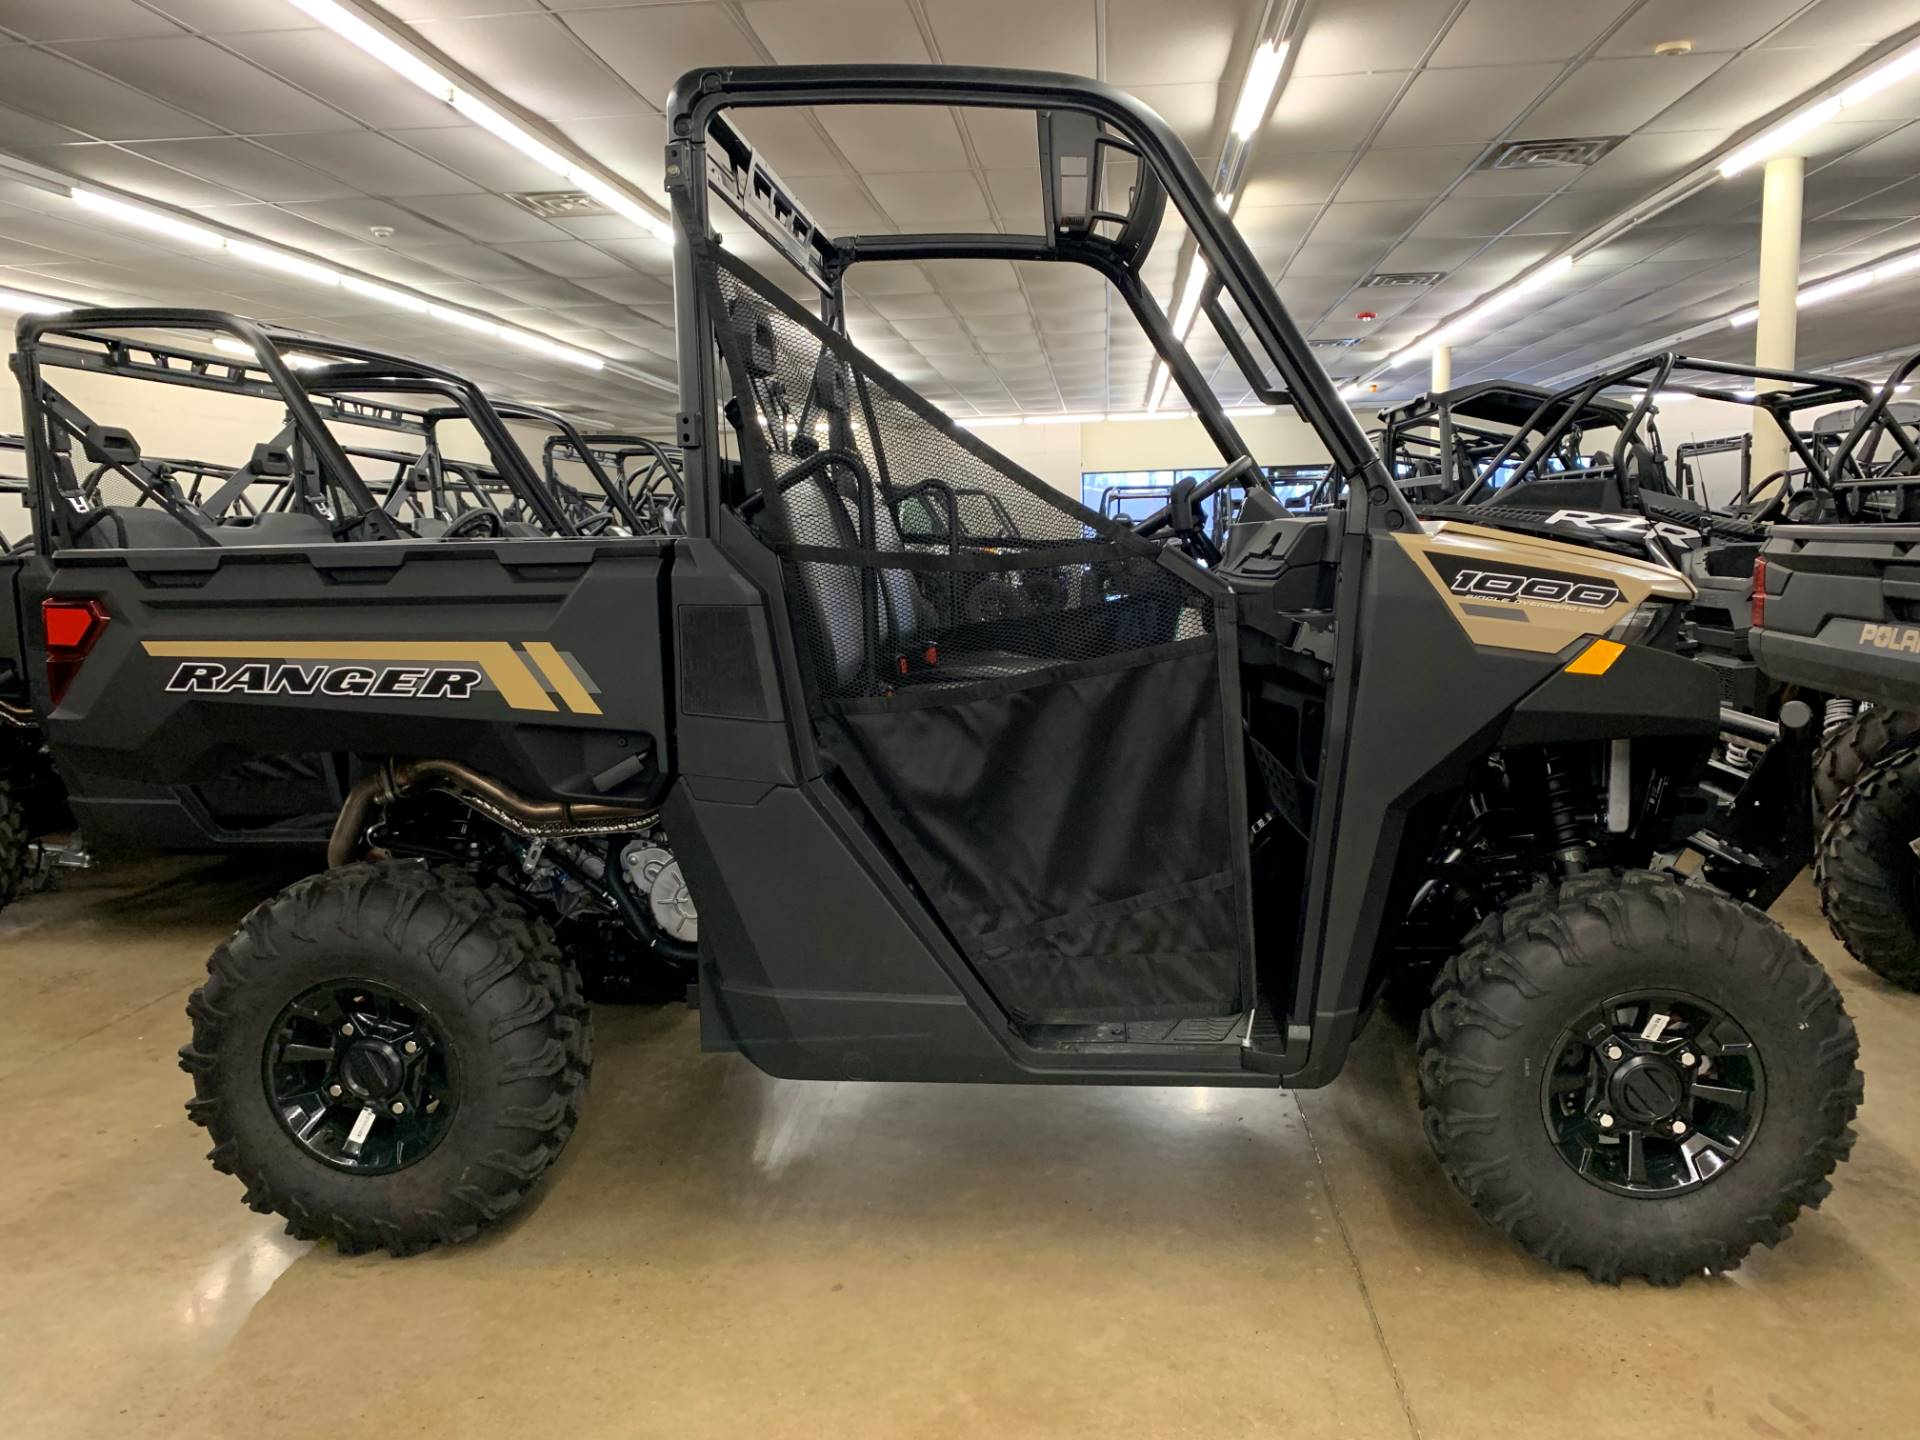 2020 Polaris Ranger 1000 Premium in Chicora, Pennsylvania - Photo 6